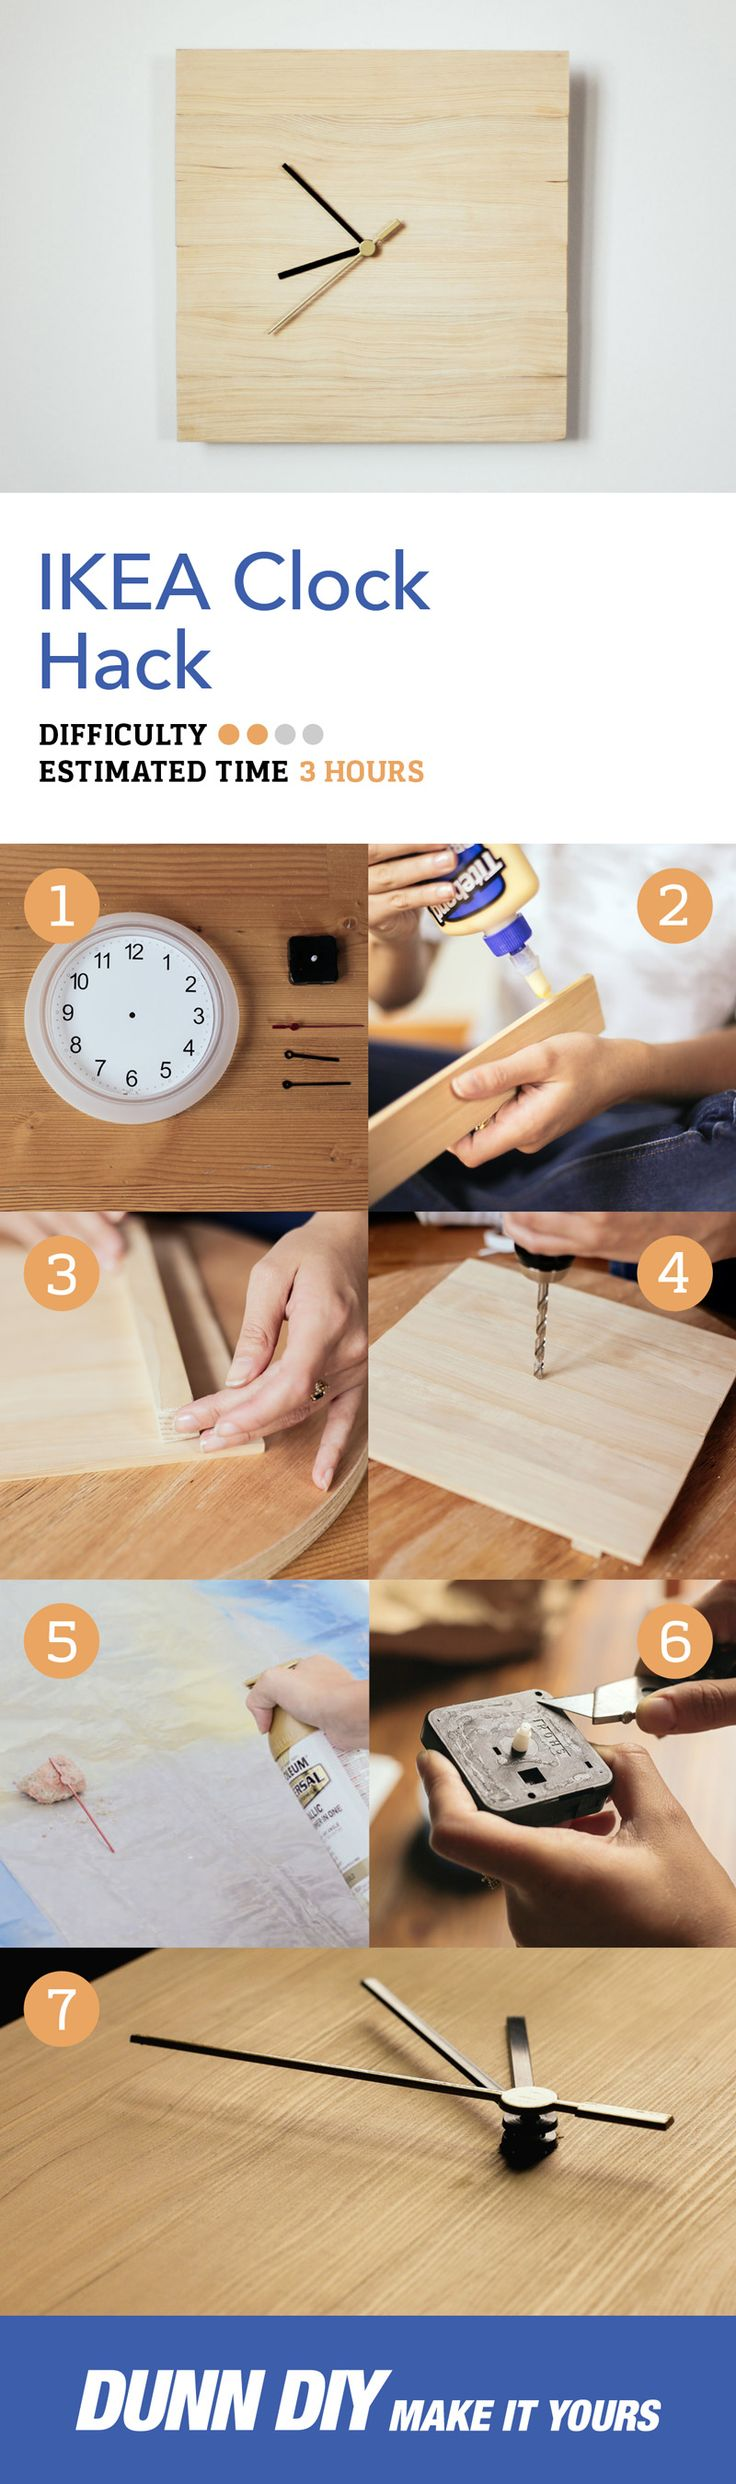 Are you a minimalist on a budget? We've crafted this sleek time keeping piece just for you. Check out our diy ikea clock hack!